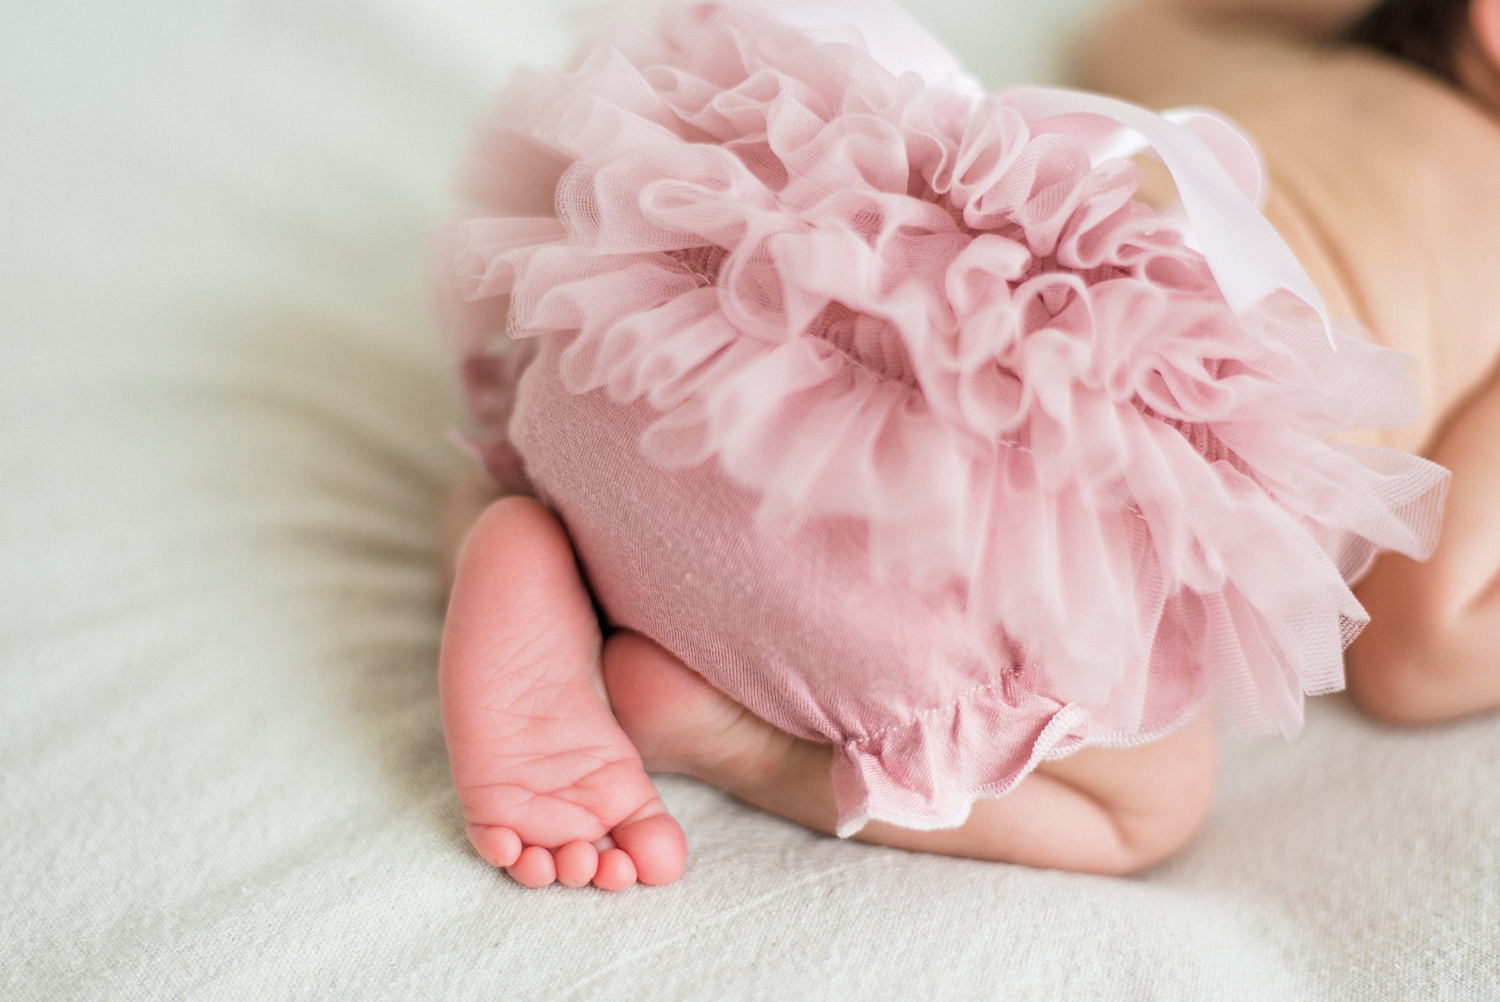 portland-newborn-photographer-baby-girl-pink-tutu-shelley-marie-photo-6